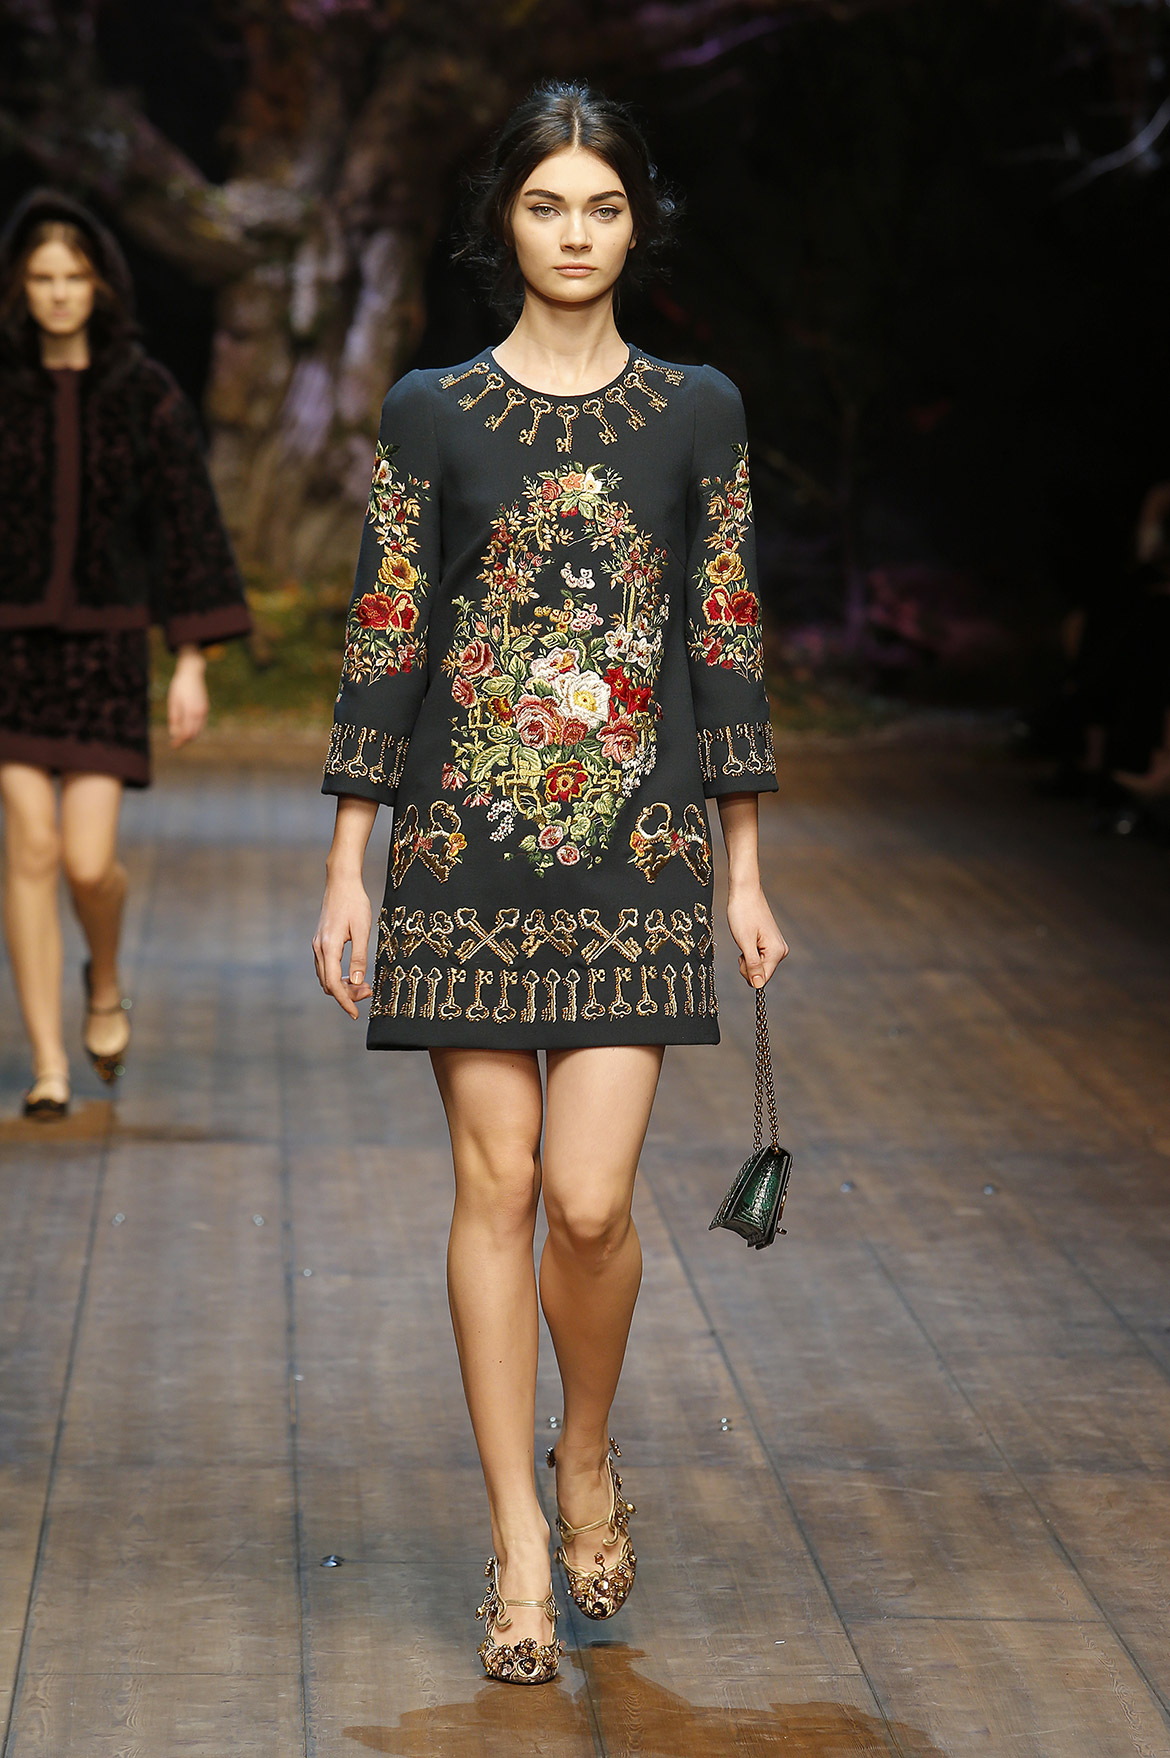 dolce-and-gabbana-fw-2014-2015-women-fashion-show-runway (3)